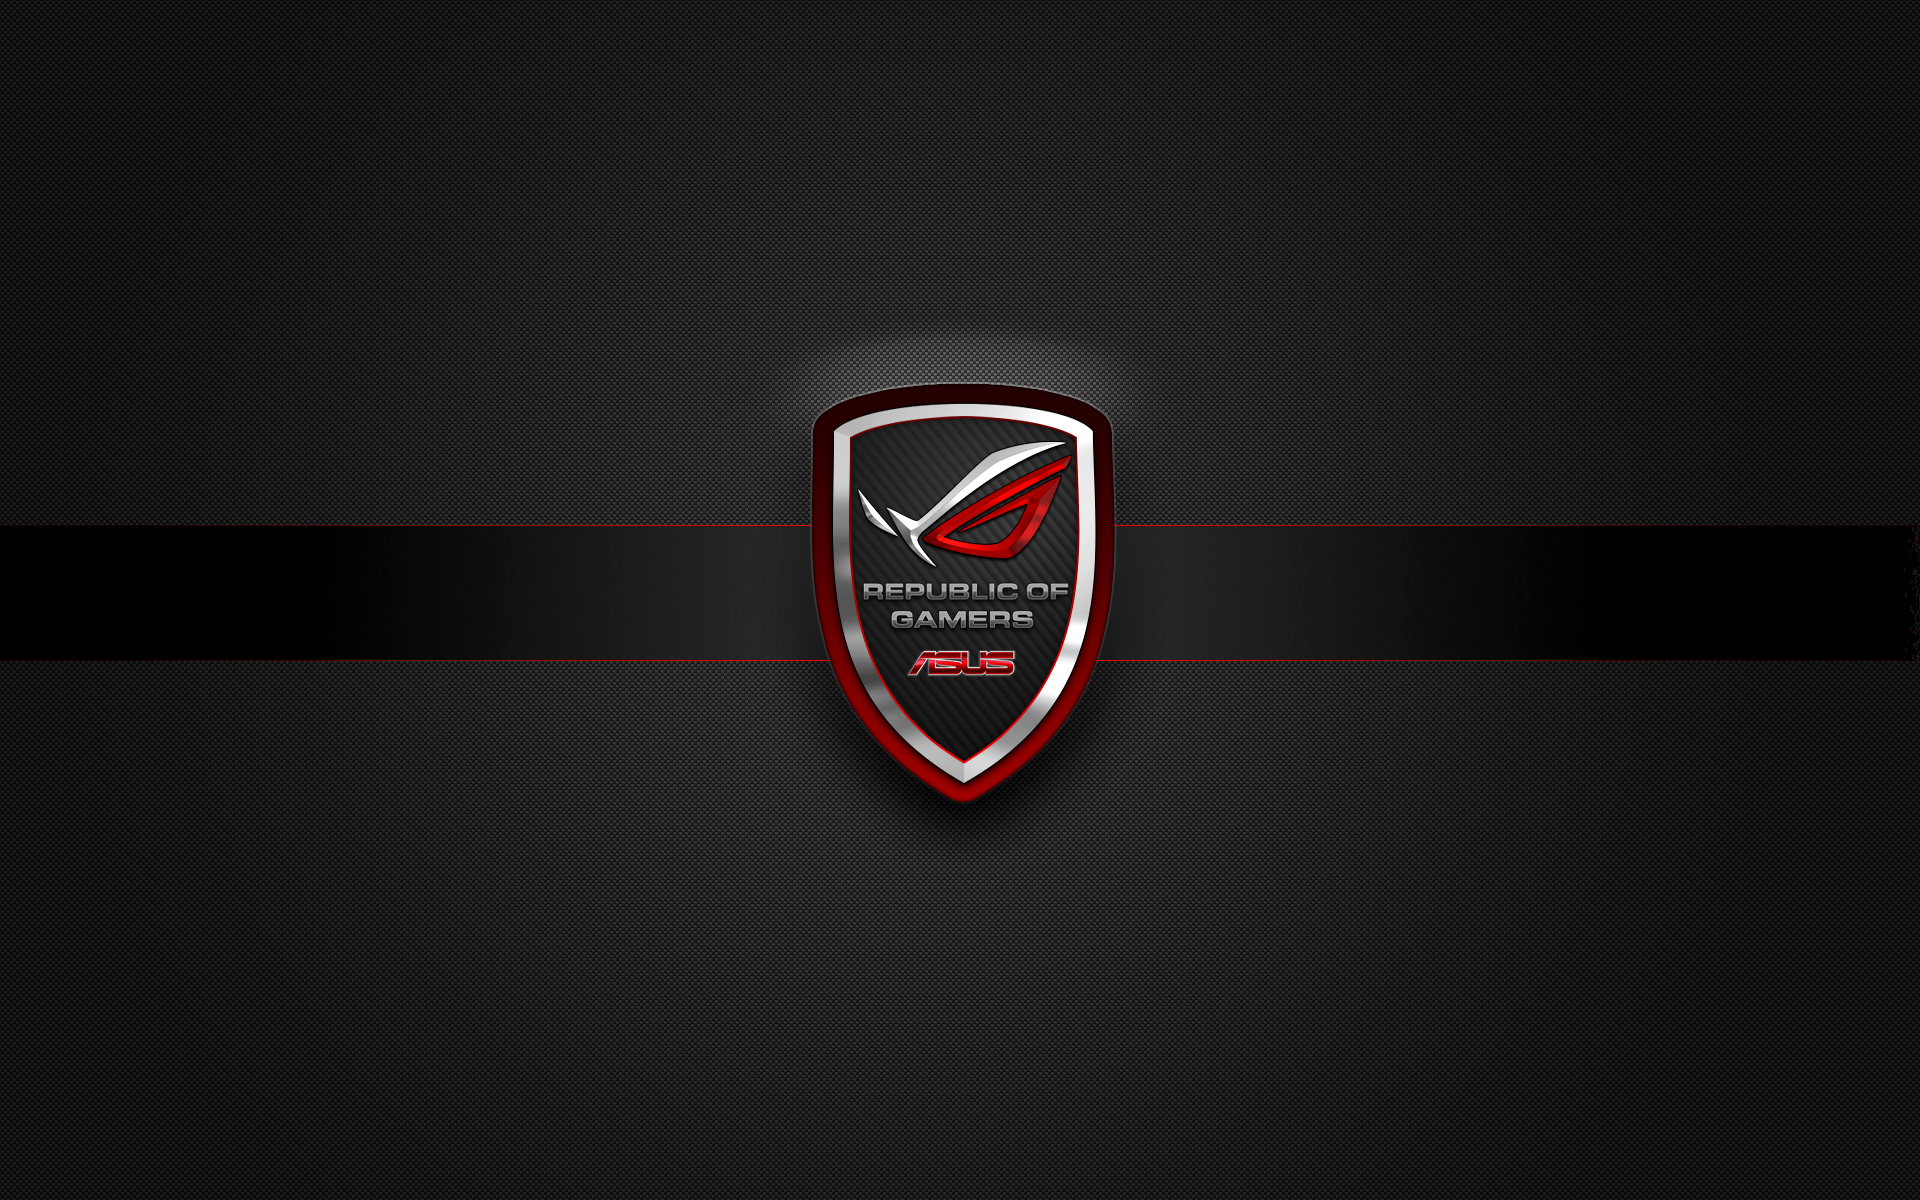 Asus Rog Wallpaper 1080P fond ecran hd 1920x1200